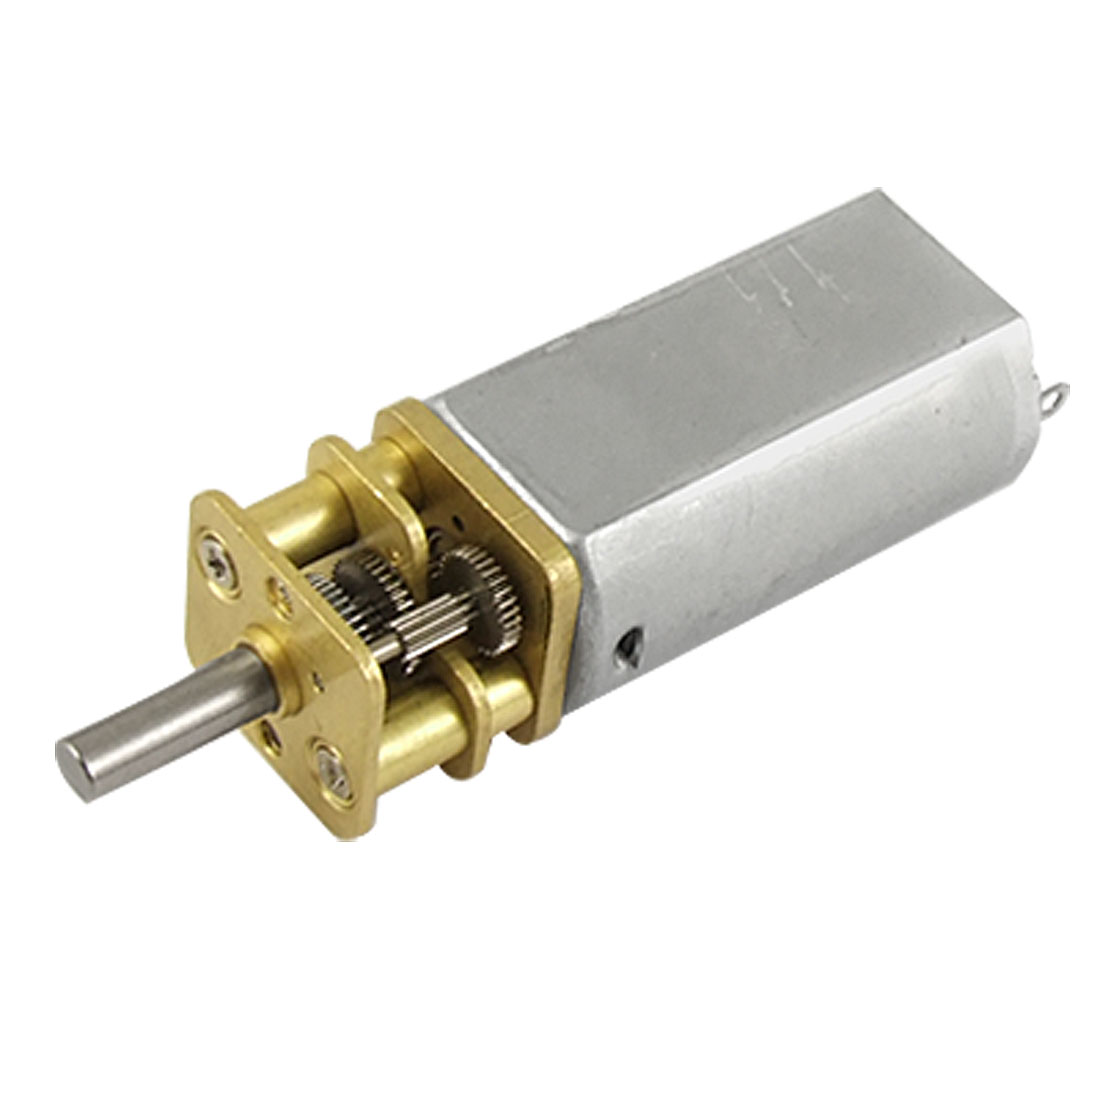 DC12V 0.08A 300RPM 6mm Shaft Speed Reducing DC Geared Motor for DIY